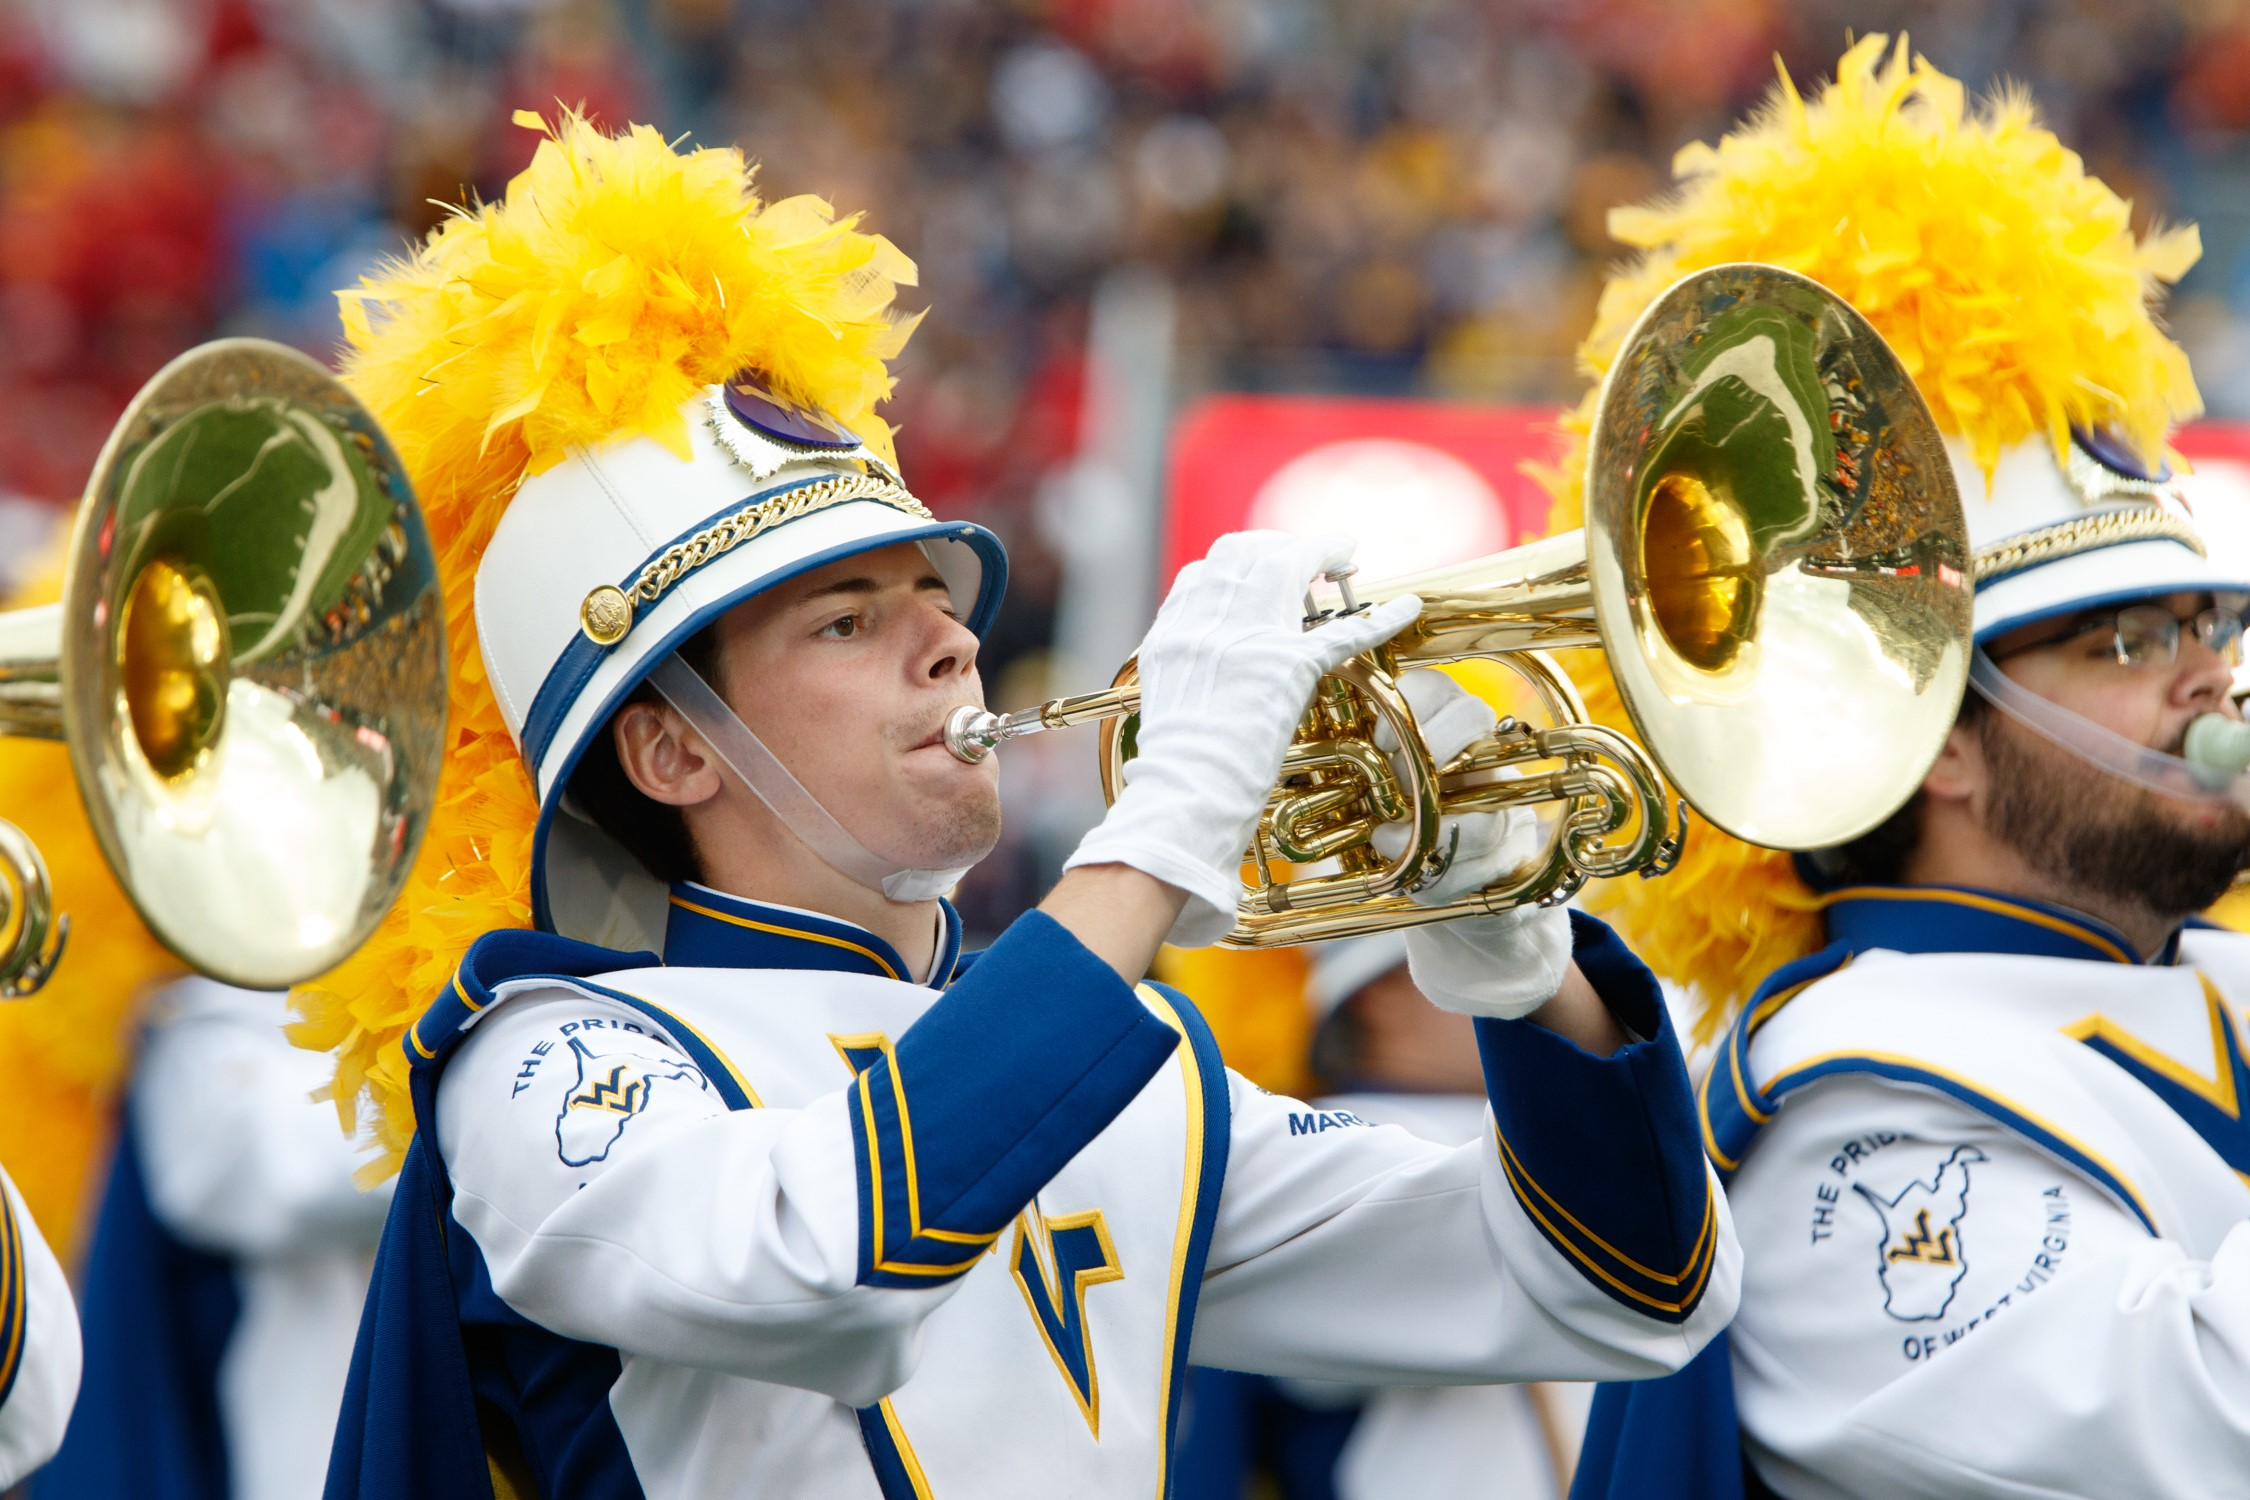 A horn player in the WVU Marching Band.